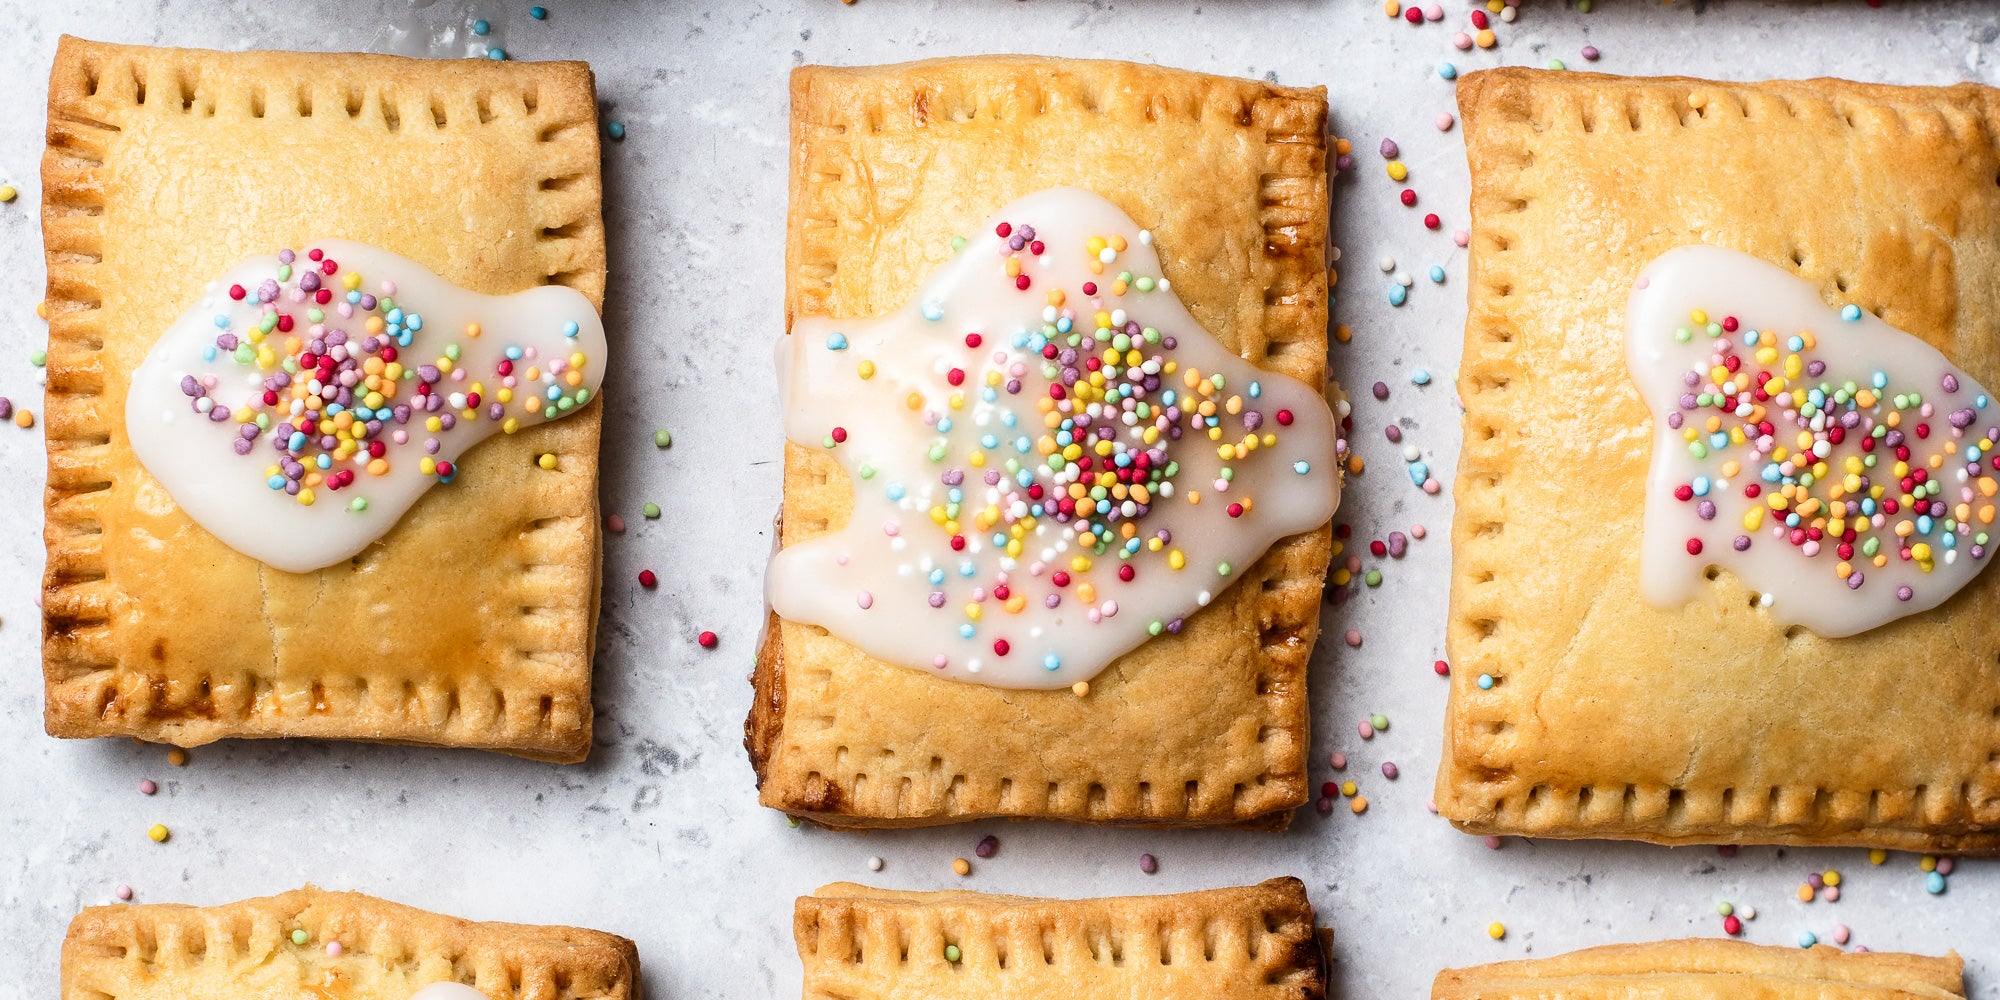 Overhead shot of  3 Pop Tarts with white icing and sprinkles.